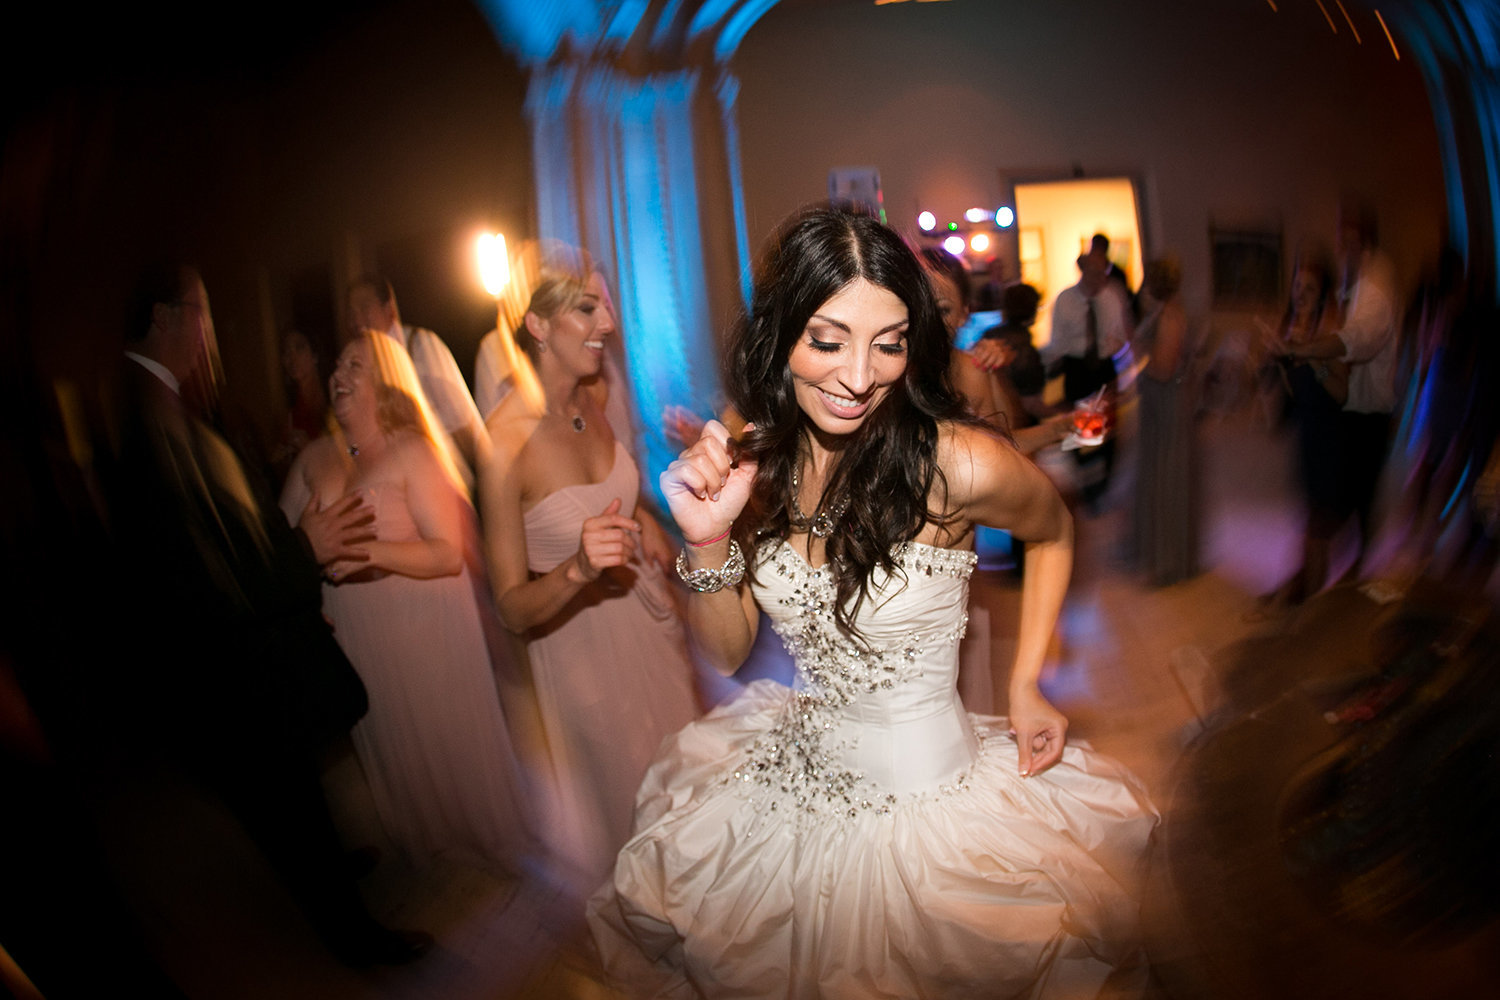 Documentary Wedding Photography styled shot of a bride at the reception